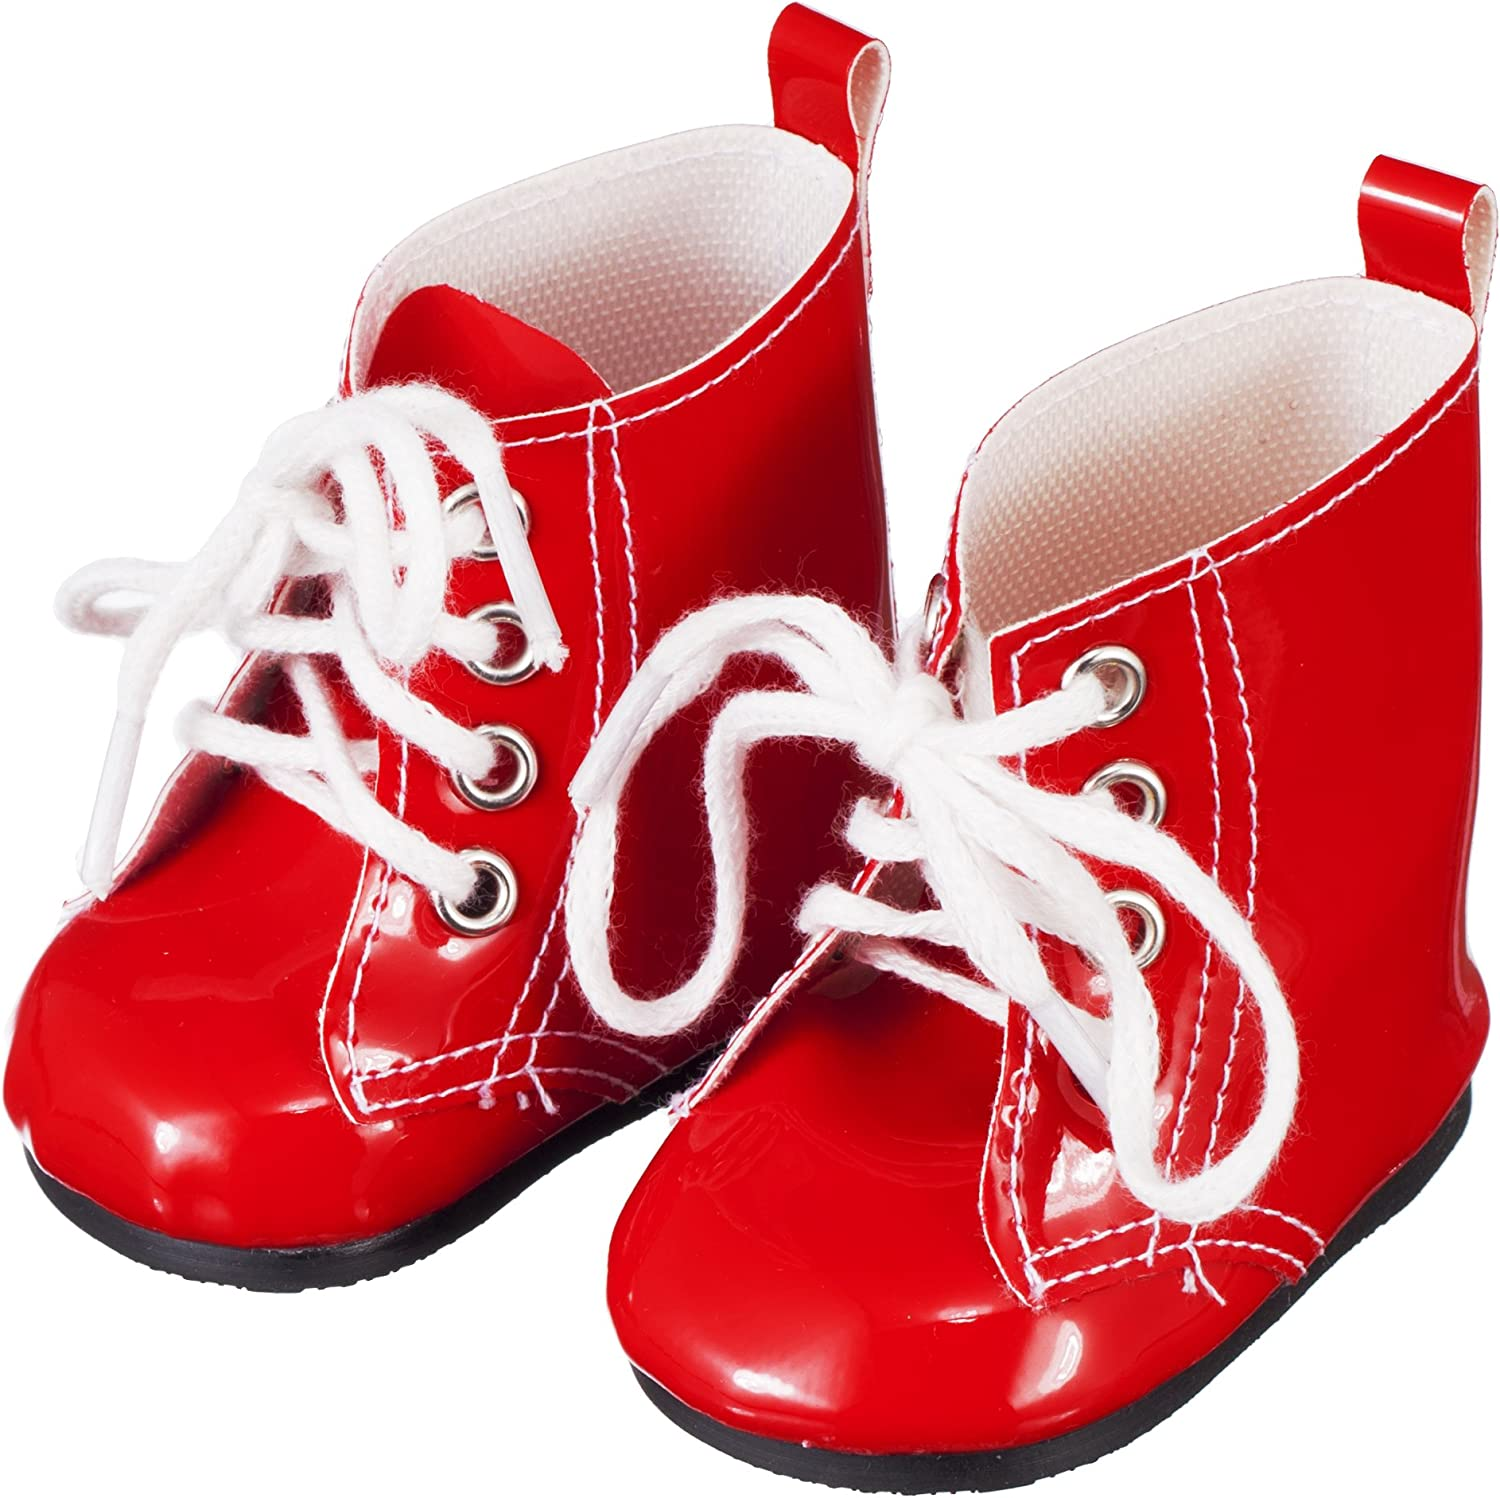 Doll Clothing shoes for American Girl And Other 18 Inch Dolls  Red Lace Up Boots  Fashion Doll Clothes by Modoll